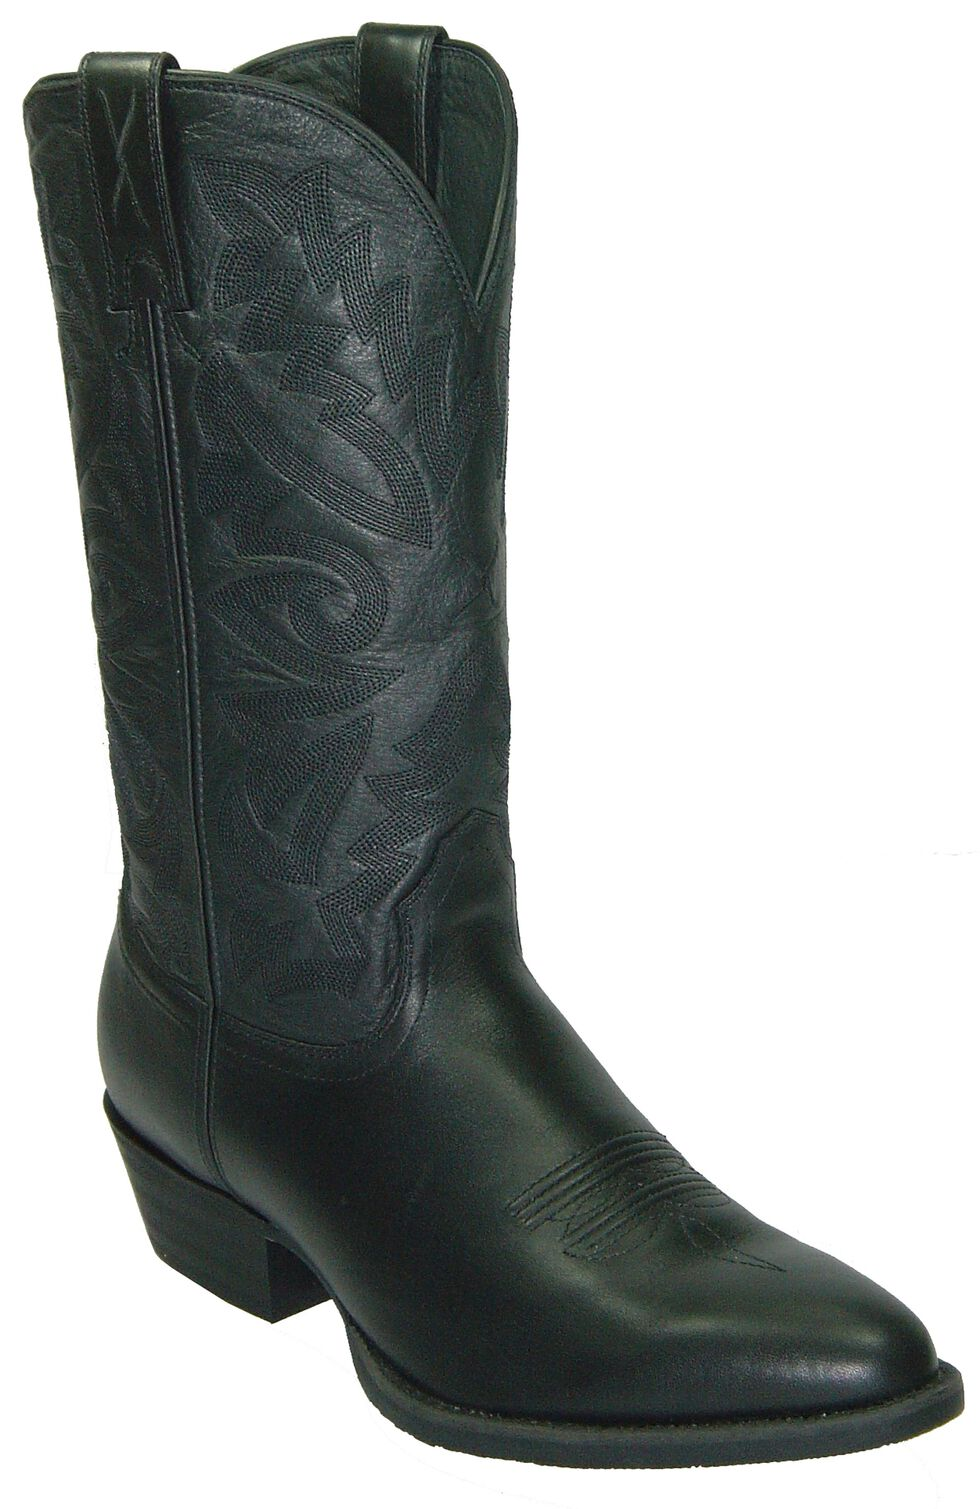 Twisted X Western Cowboy Boots - Round Toe, Black, hi-res